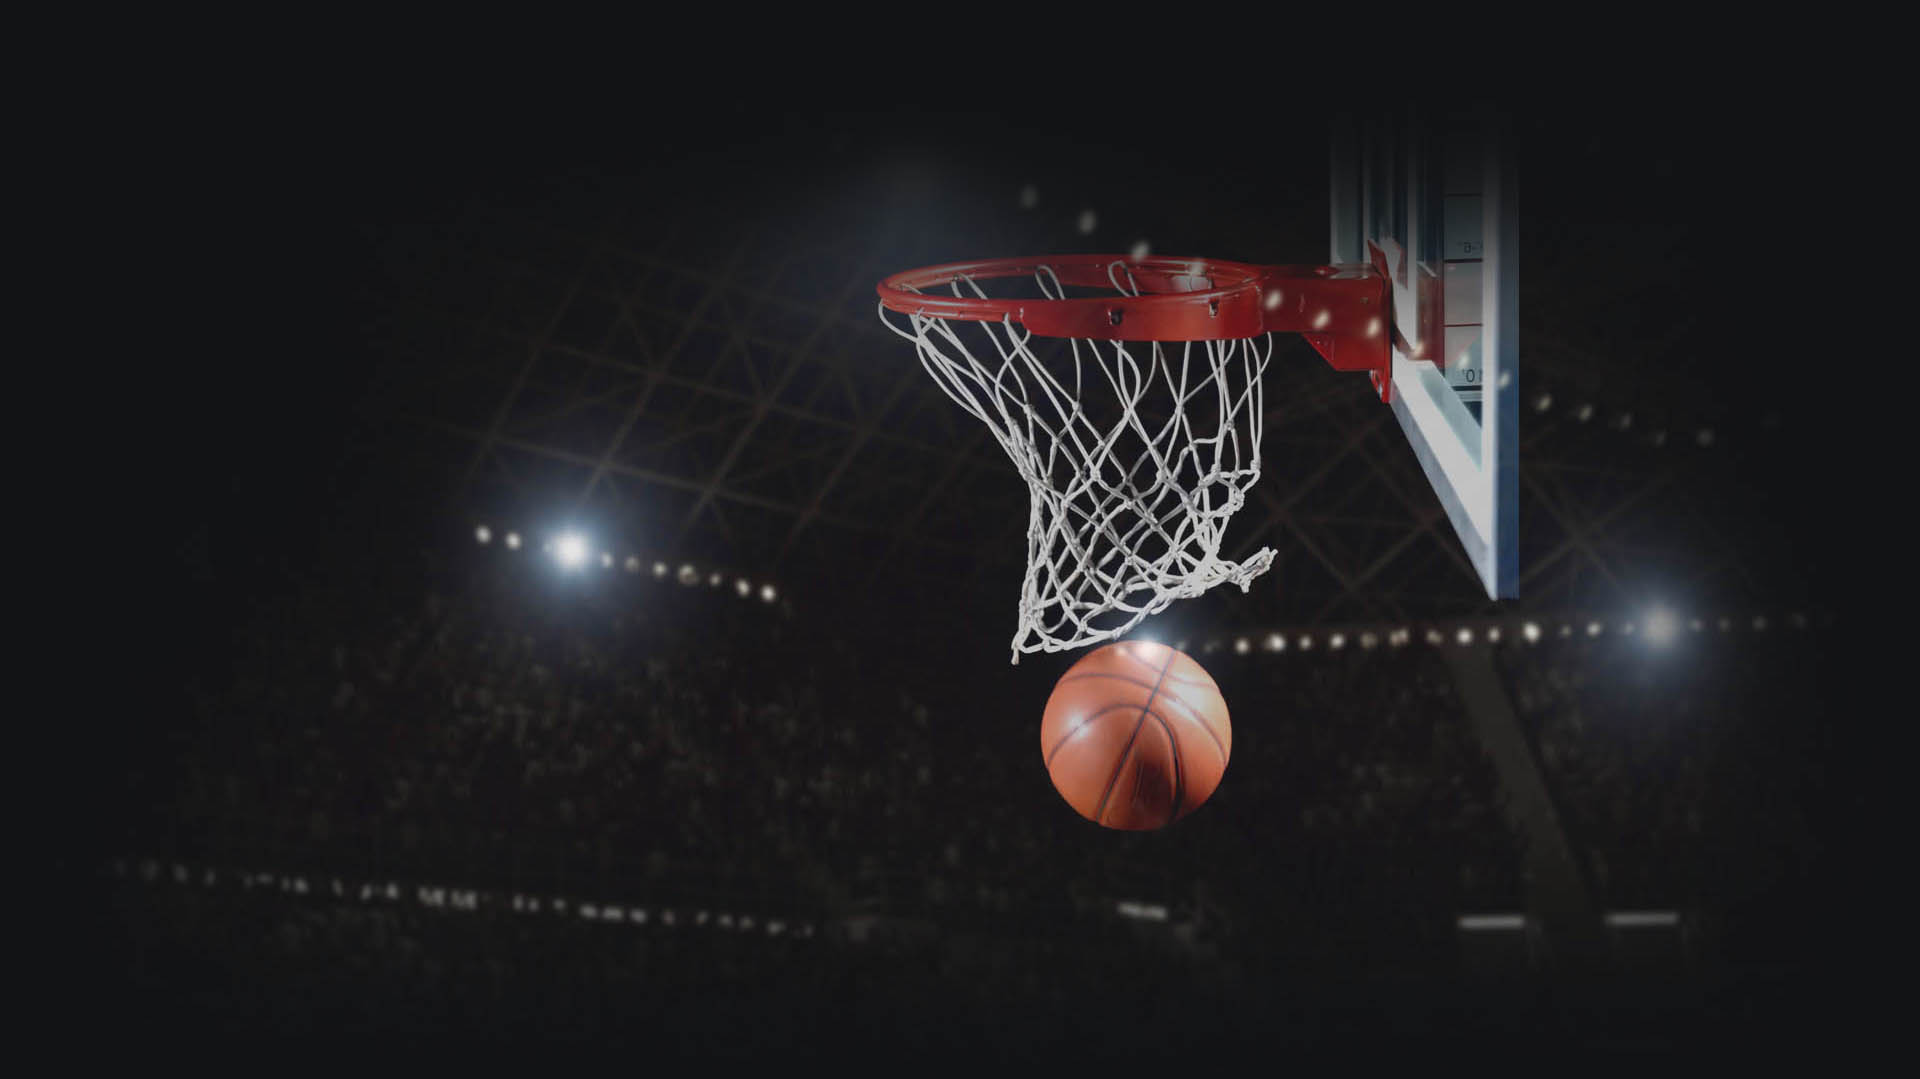 Basketball: Basketball Shooting Workout Plans To Develop And Improve